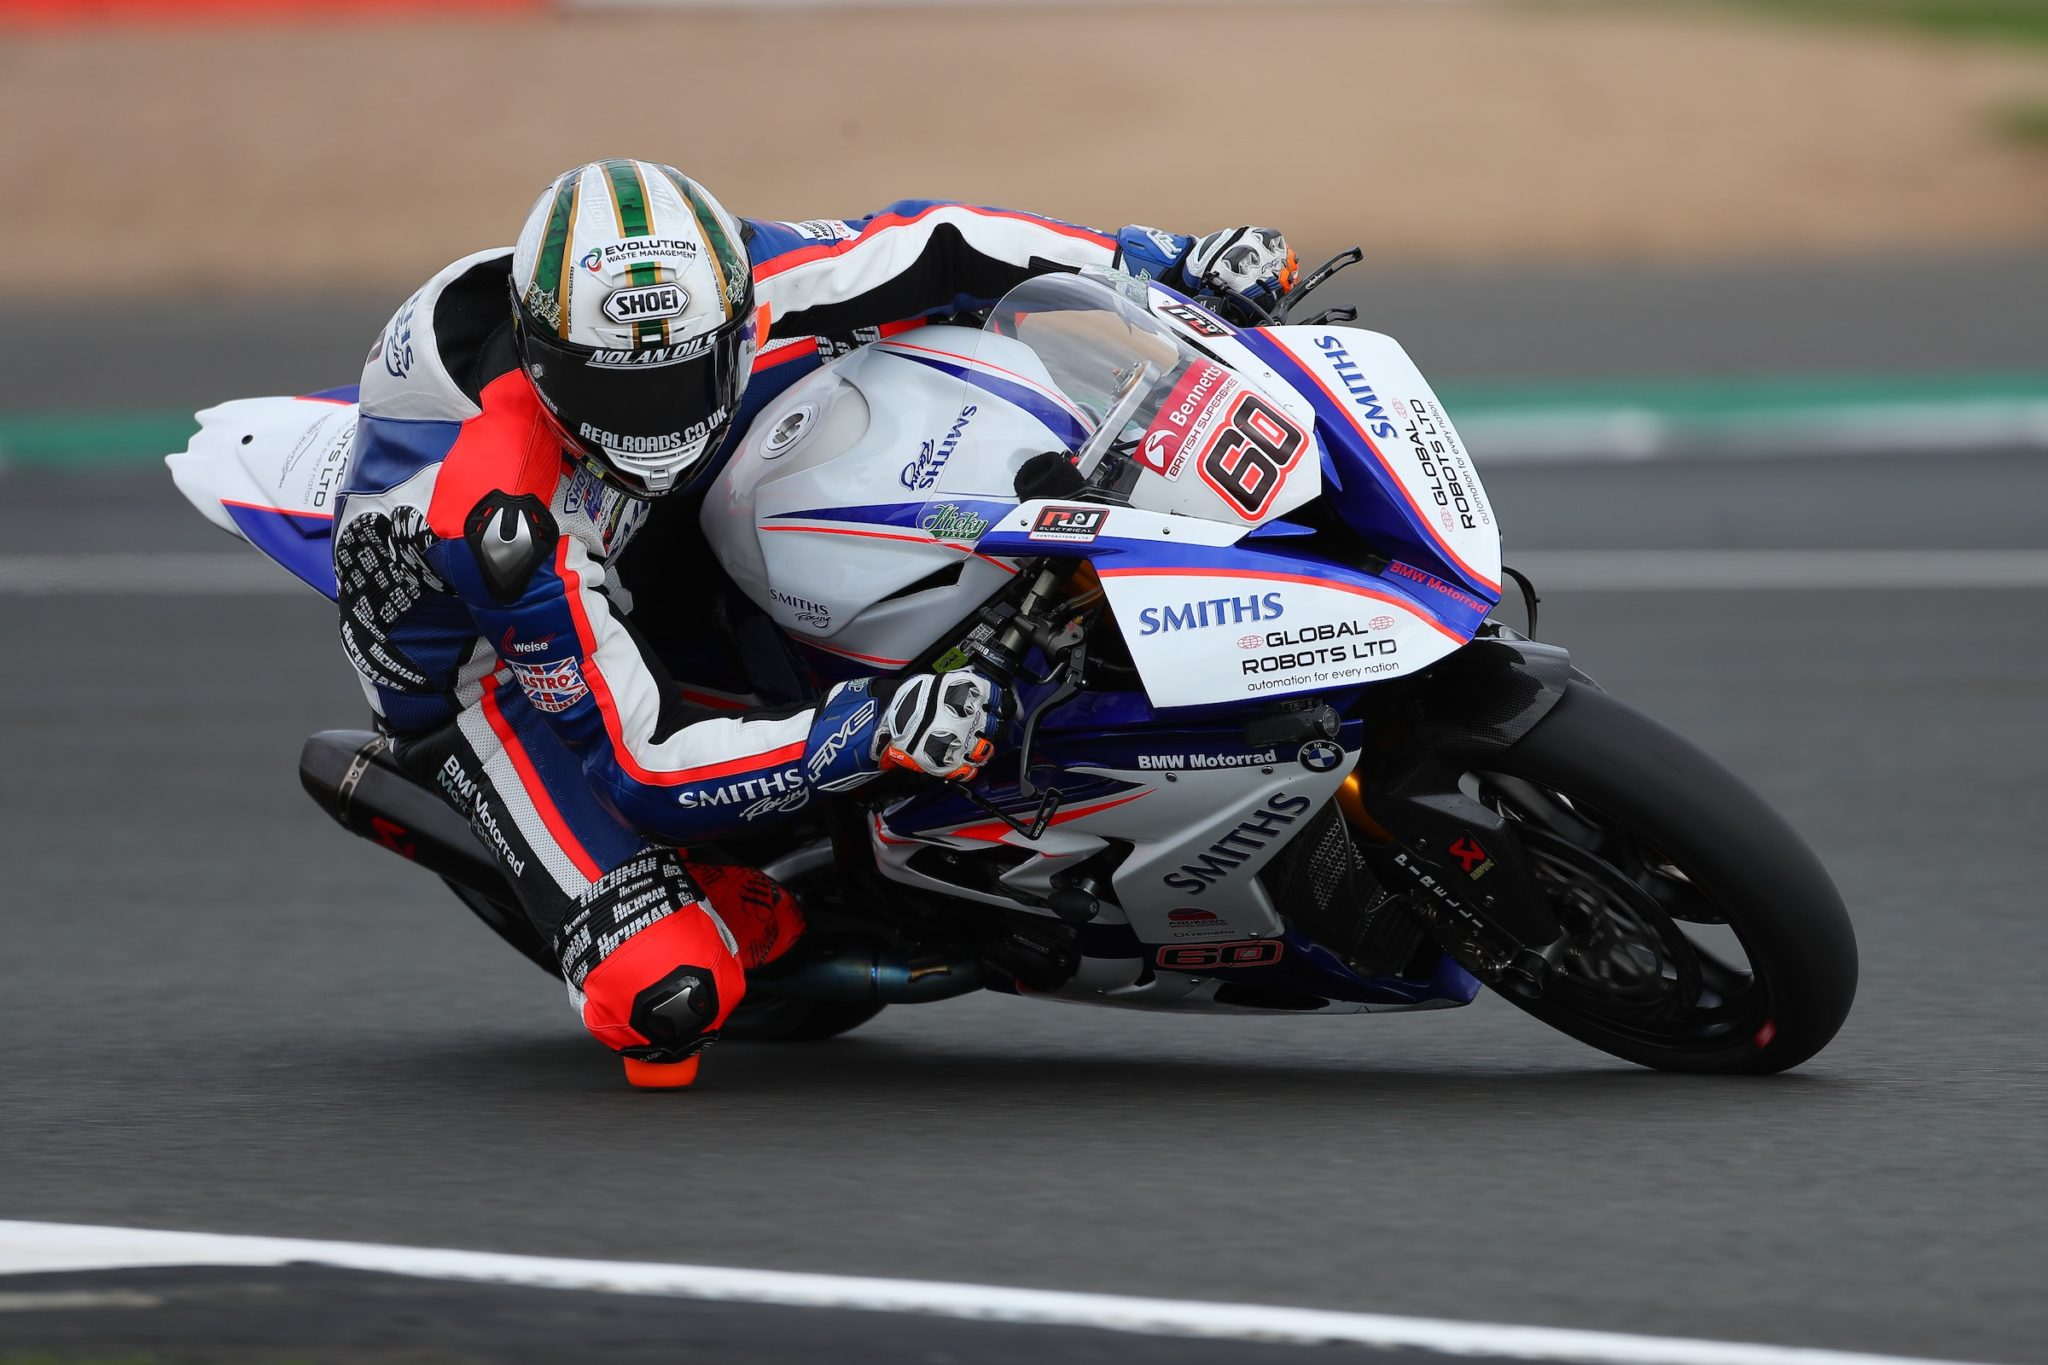 Peter Hickman racing at the BSB credit Double Red